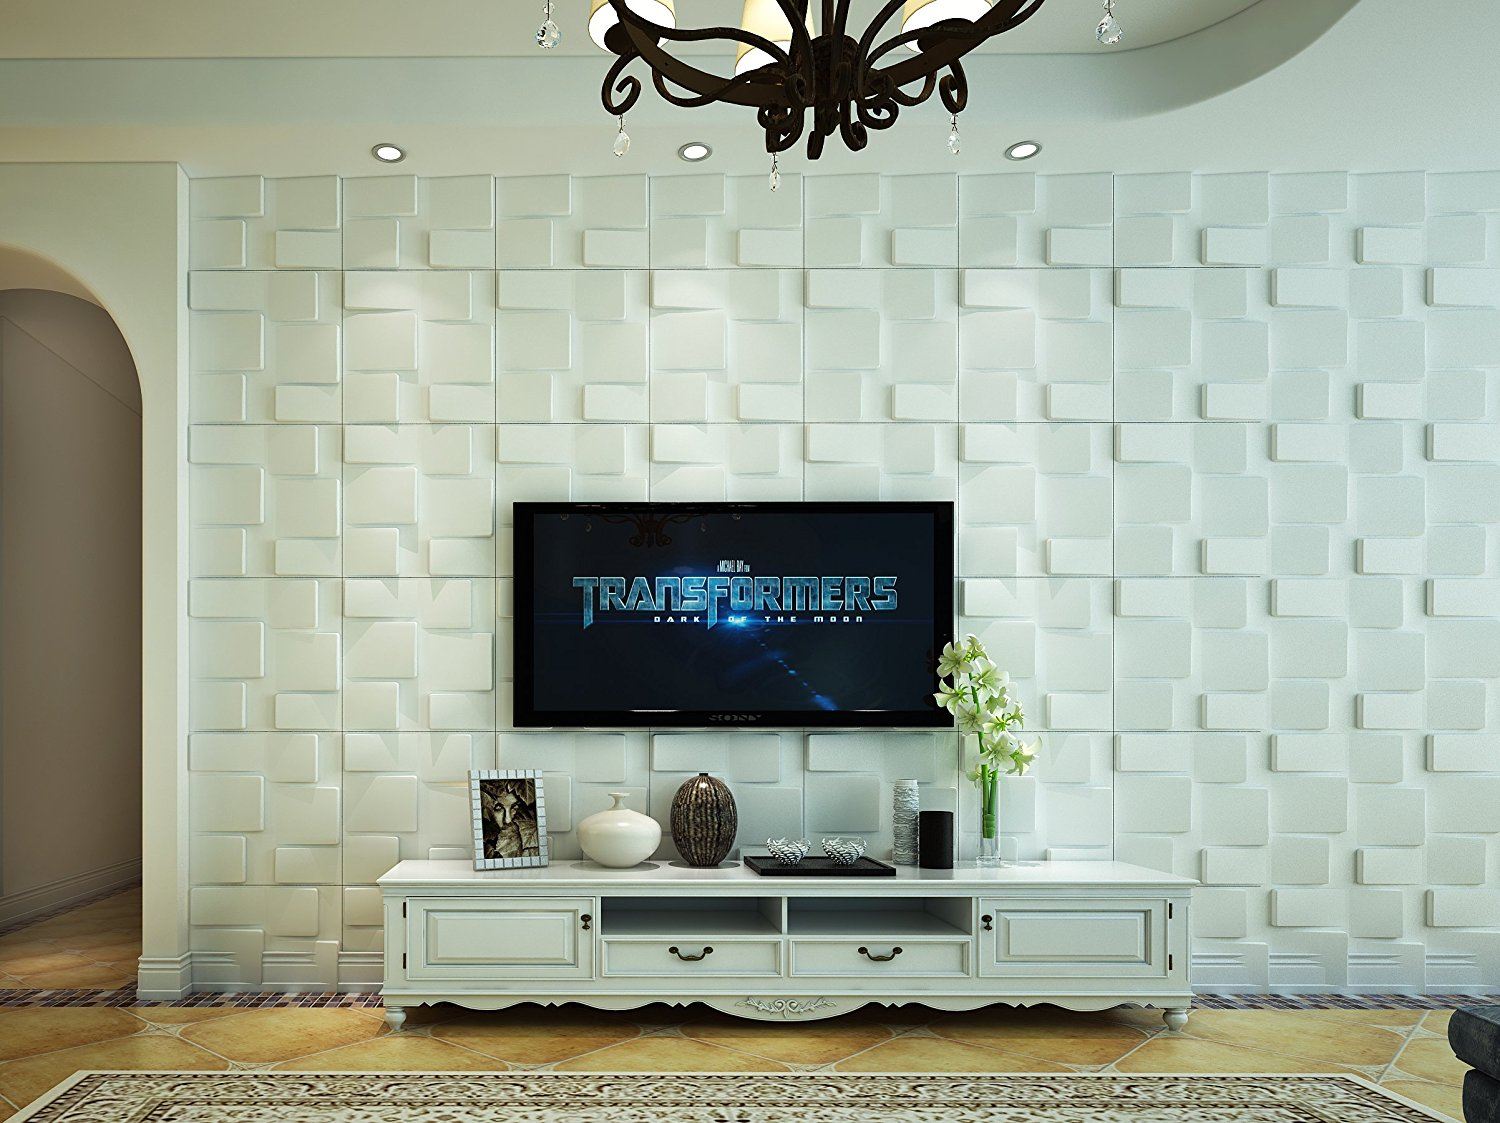 Affordable Home Innovations Modern Rubrick 3d Wall Panels Eco-friendly 32 Sq Ft